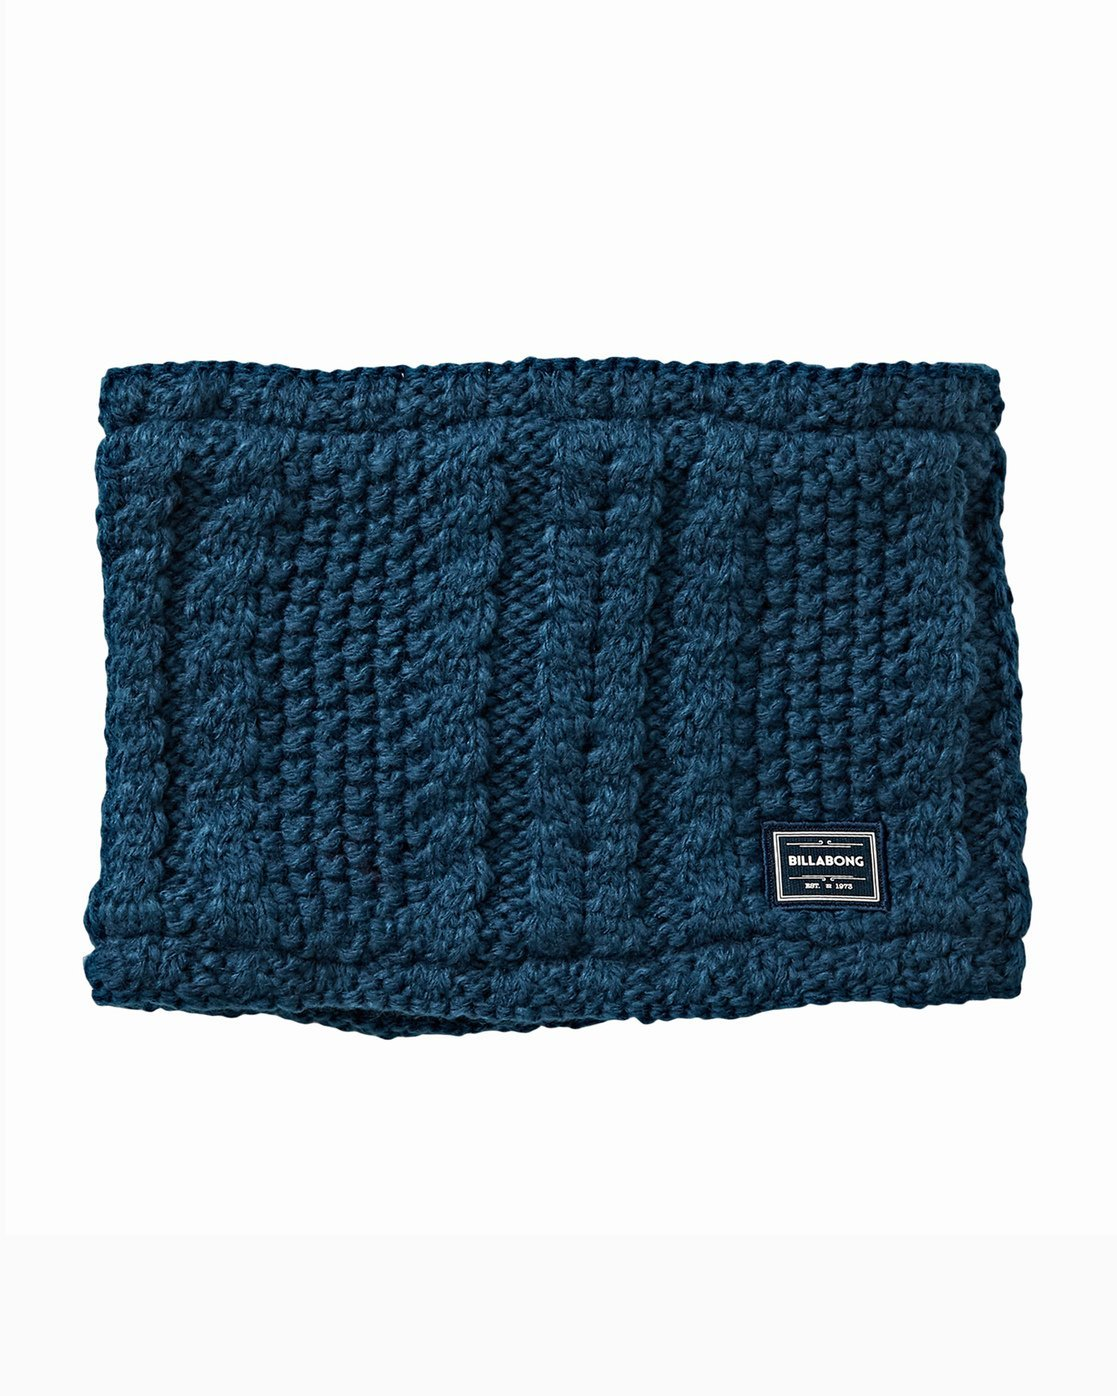 Billabong Cabin Neckwarmer